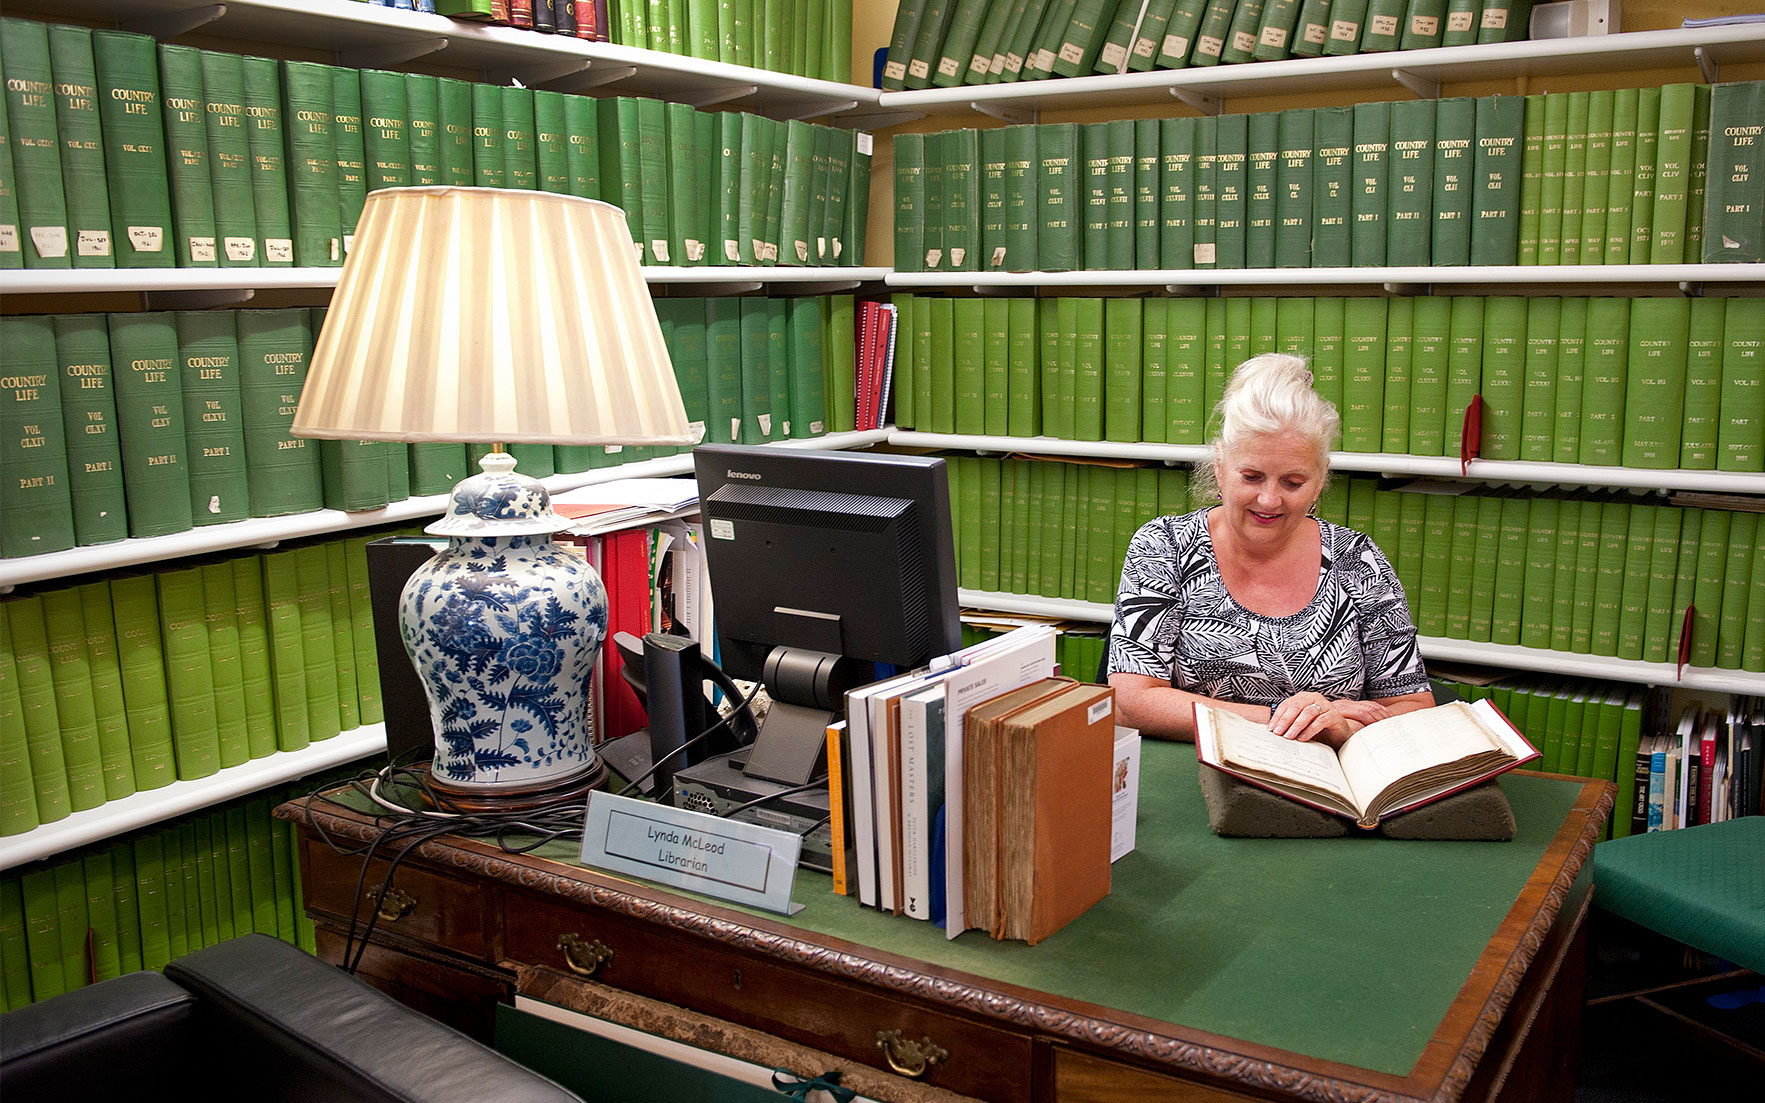 Lynda McLeod, Head Librarian